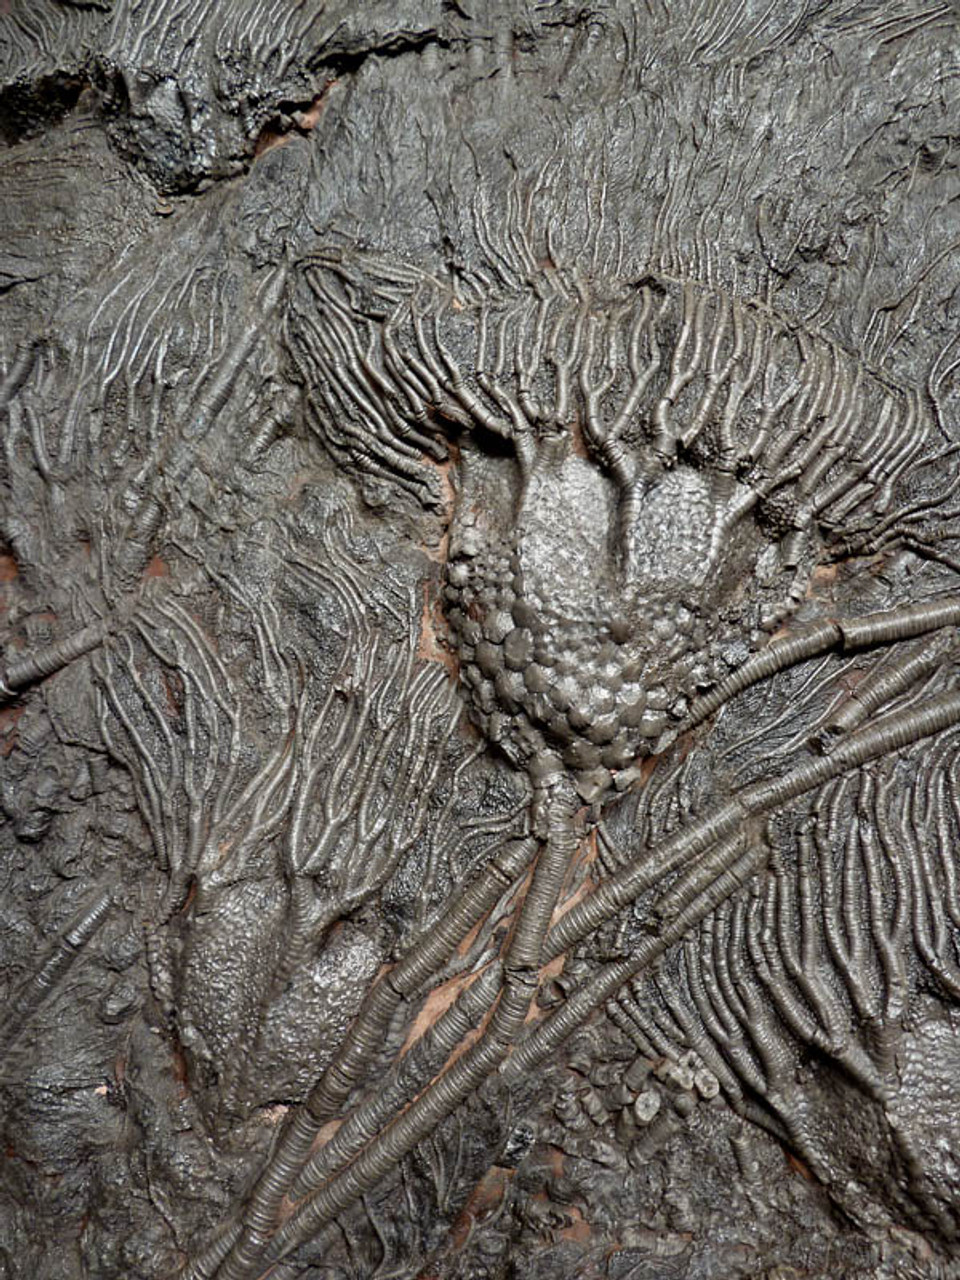 LARGE PREHISTORIC SEA LILY CRINOID FOSSILS ON NATURALLY COLORED ANCIENT OCEAN FLOOR ROCK *CRI033